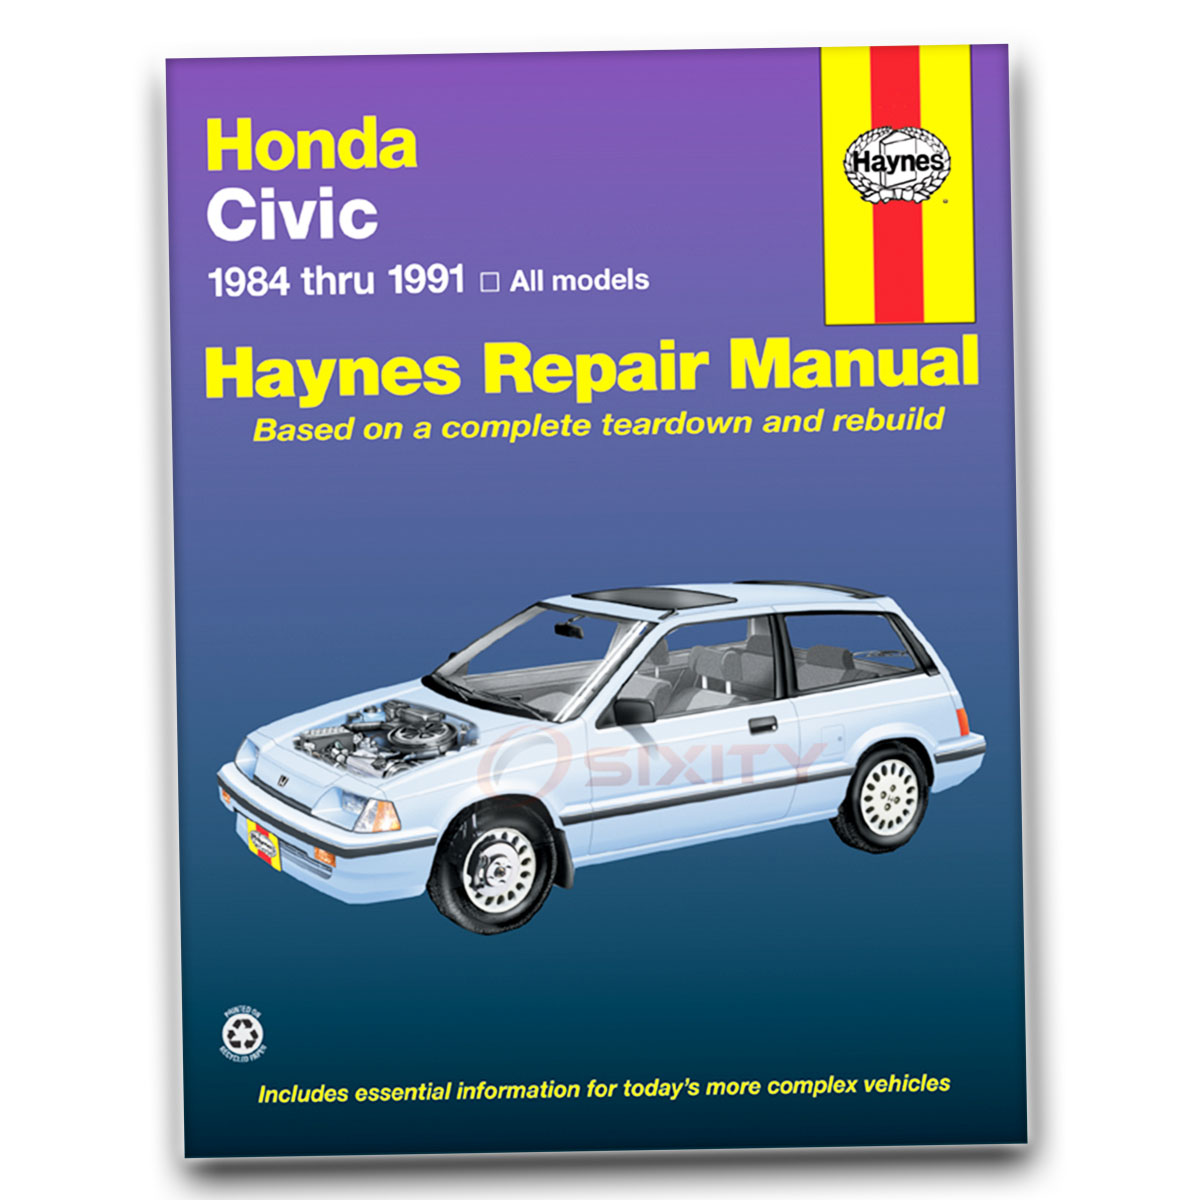 honda civic haynes repair manual si wagovan base rt 4wd ex 1500 crx rh ebay com haynes manual honda fit haynes manual honda fit